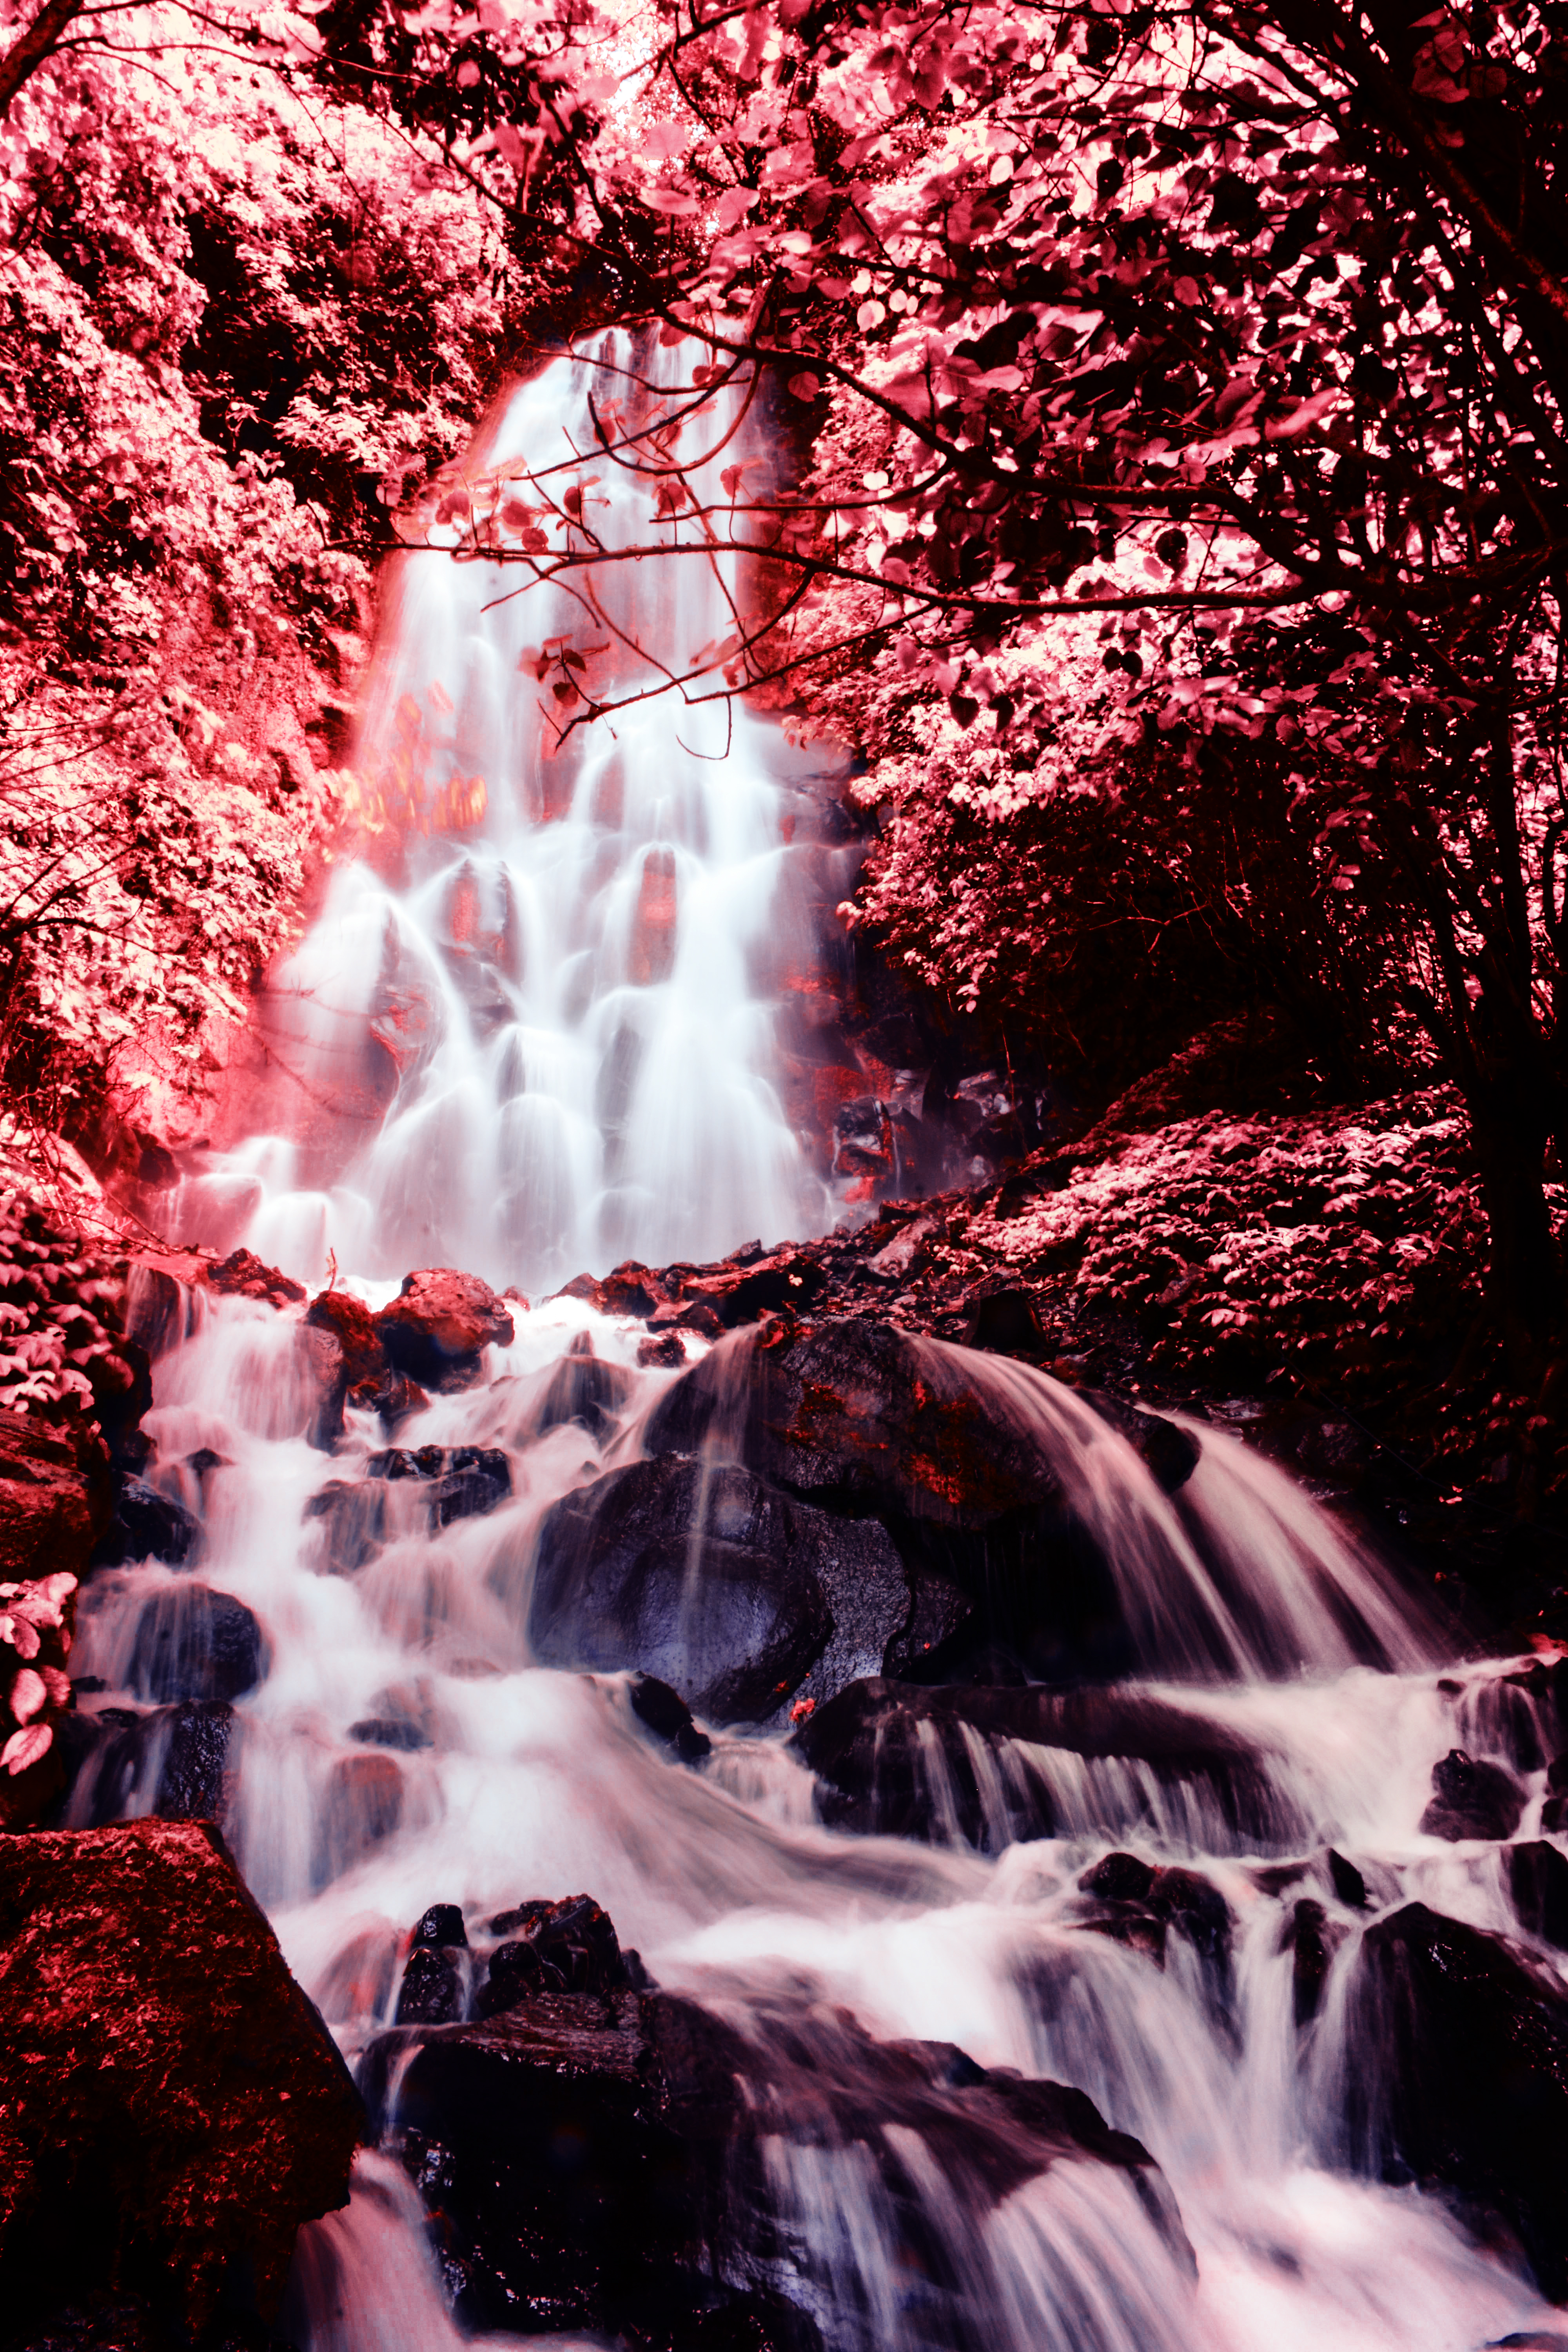 65414 Screensavers and Wallpapers Photoshop for phone. Download Nature, Stones, Waterfall, Flow, Photoshop pictures for free